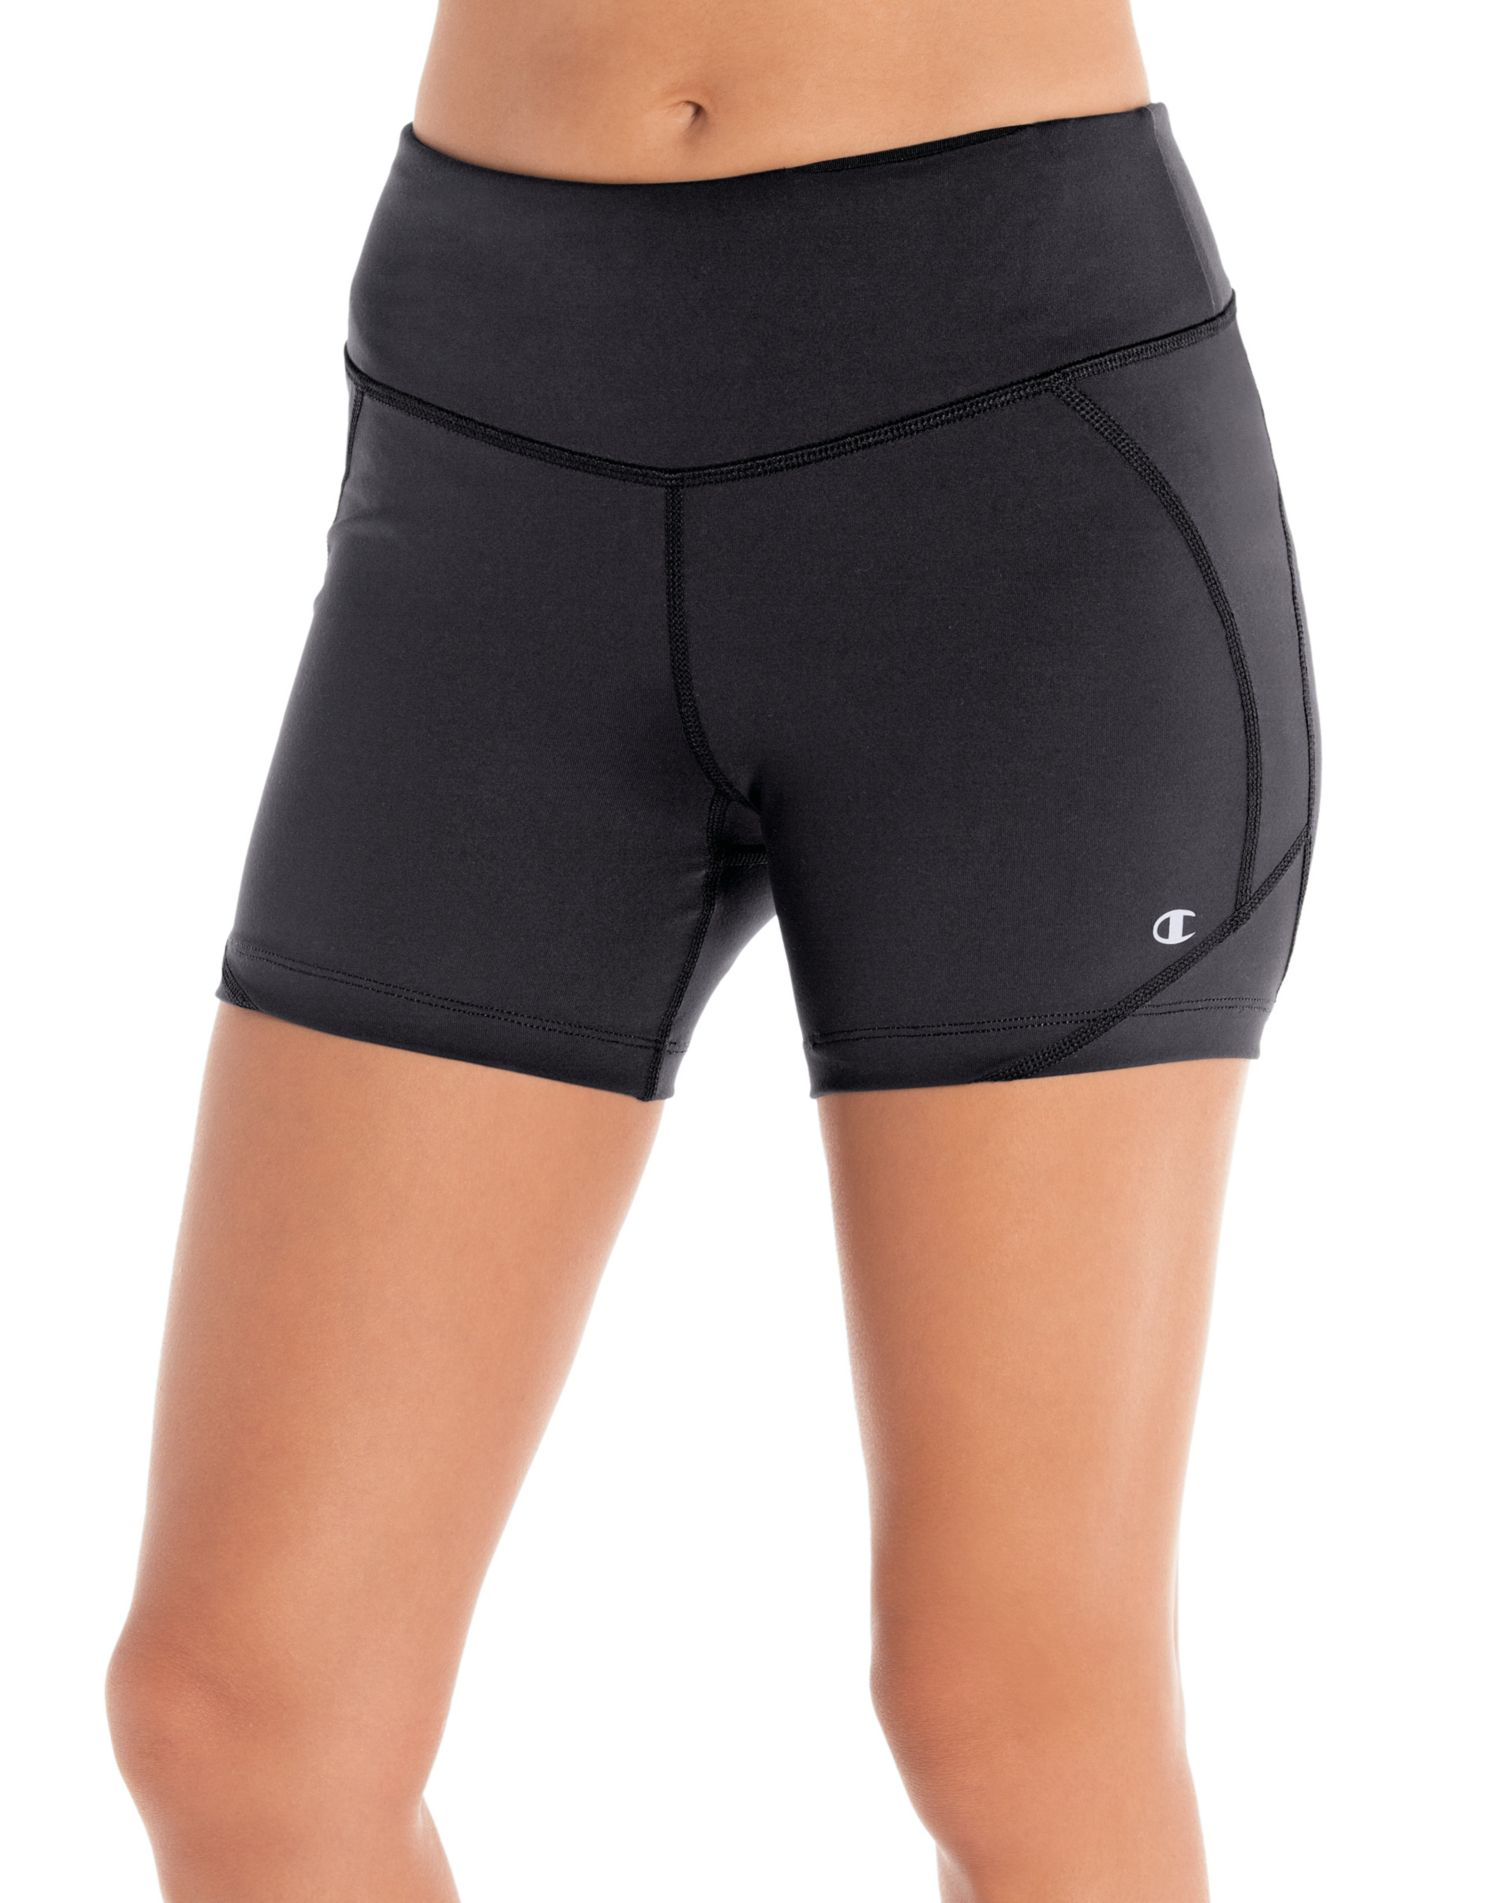 Champion 8447 - SHAPE™ Women's Bike Shorts